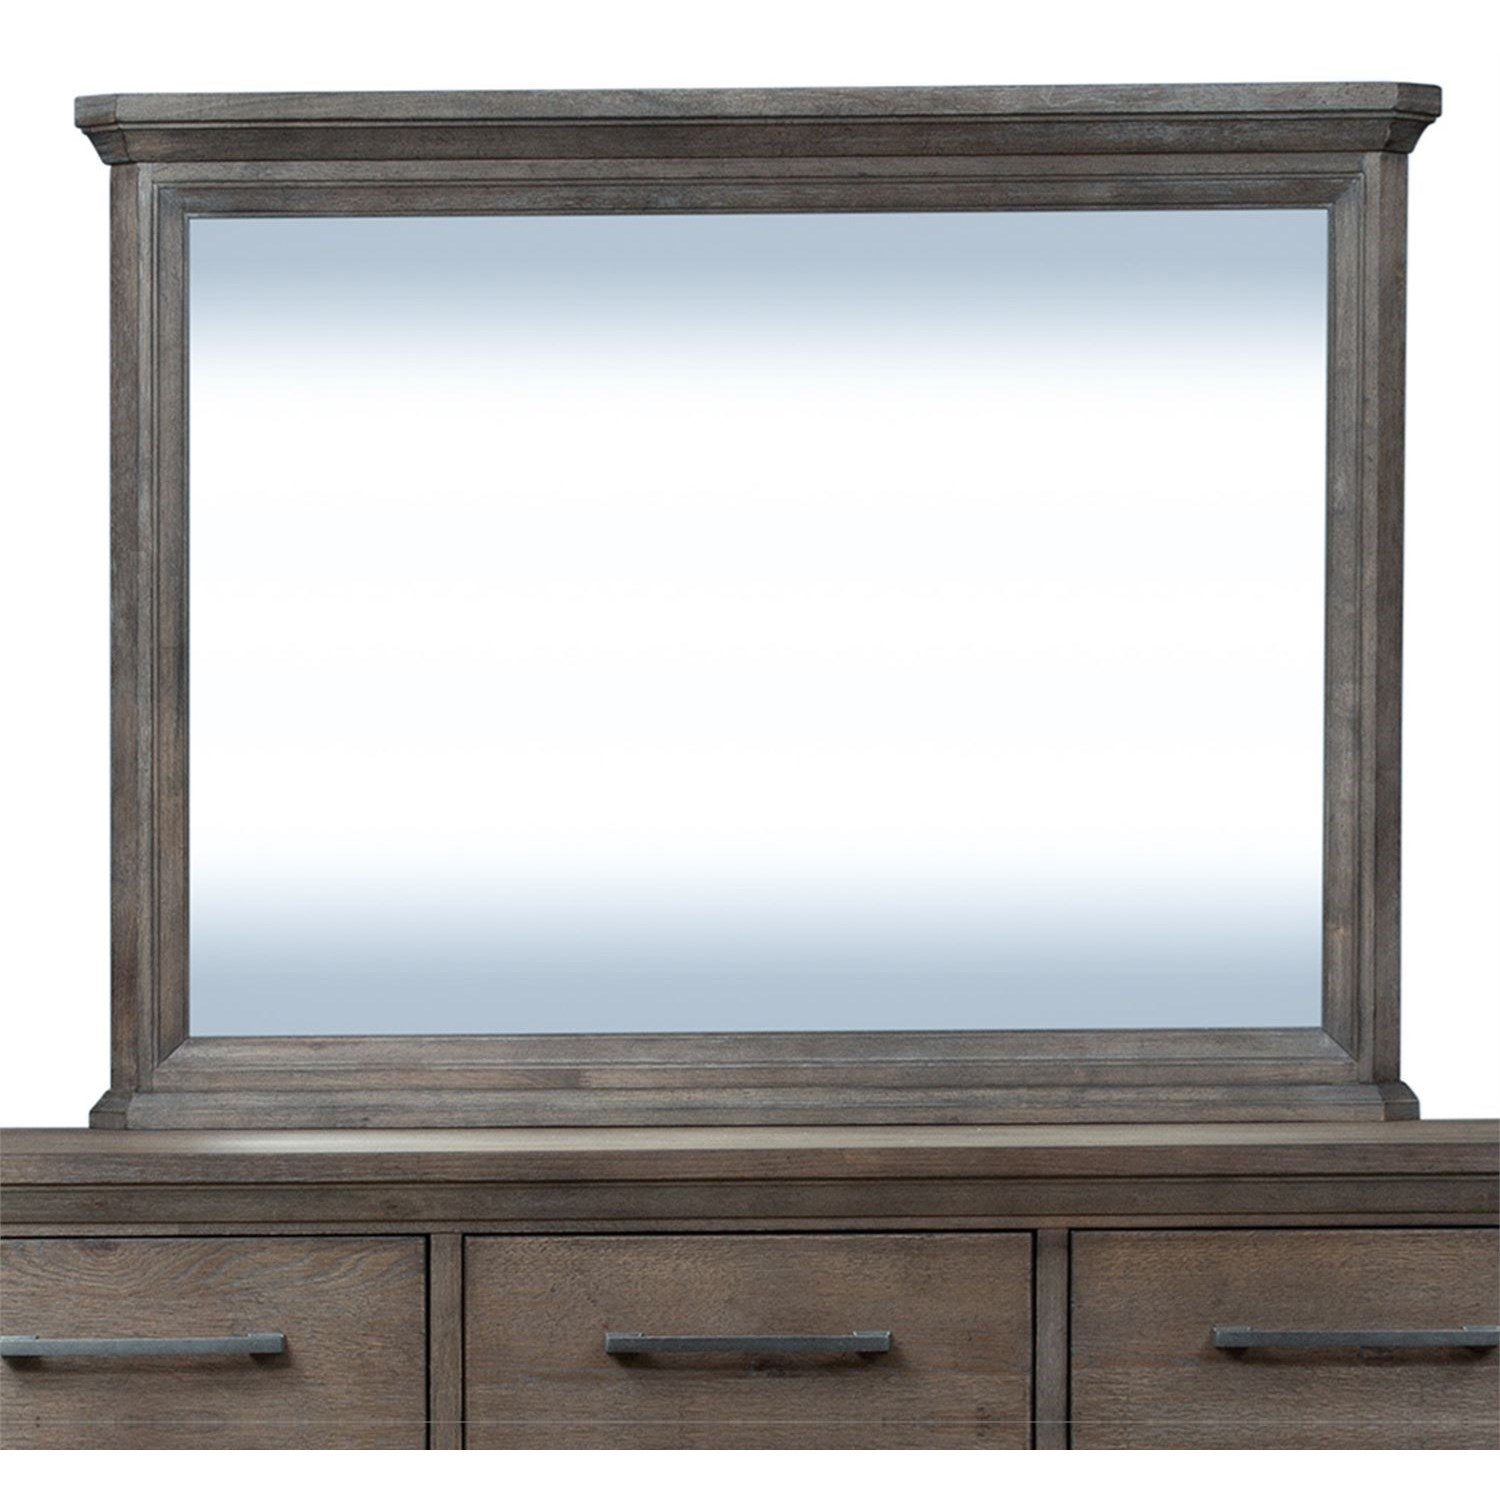 Artisan Prairie Dresser Mirror by Liberty Furniture at Northeast Factory Direct